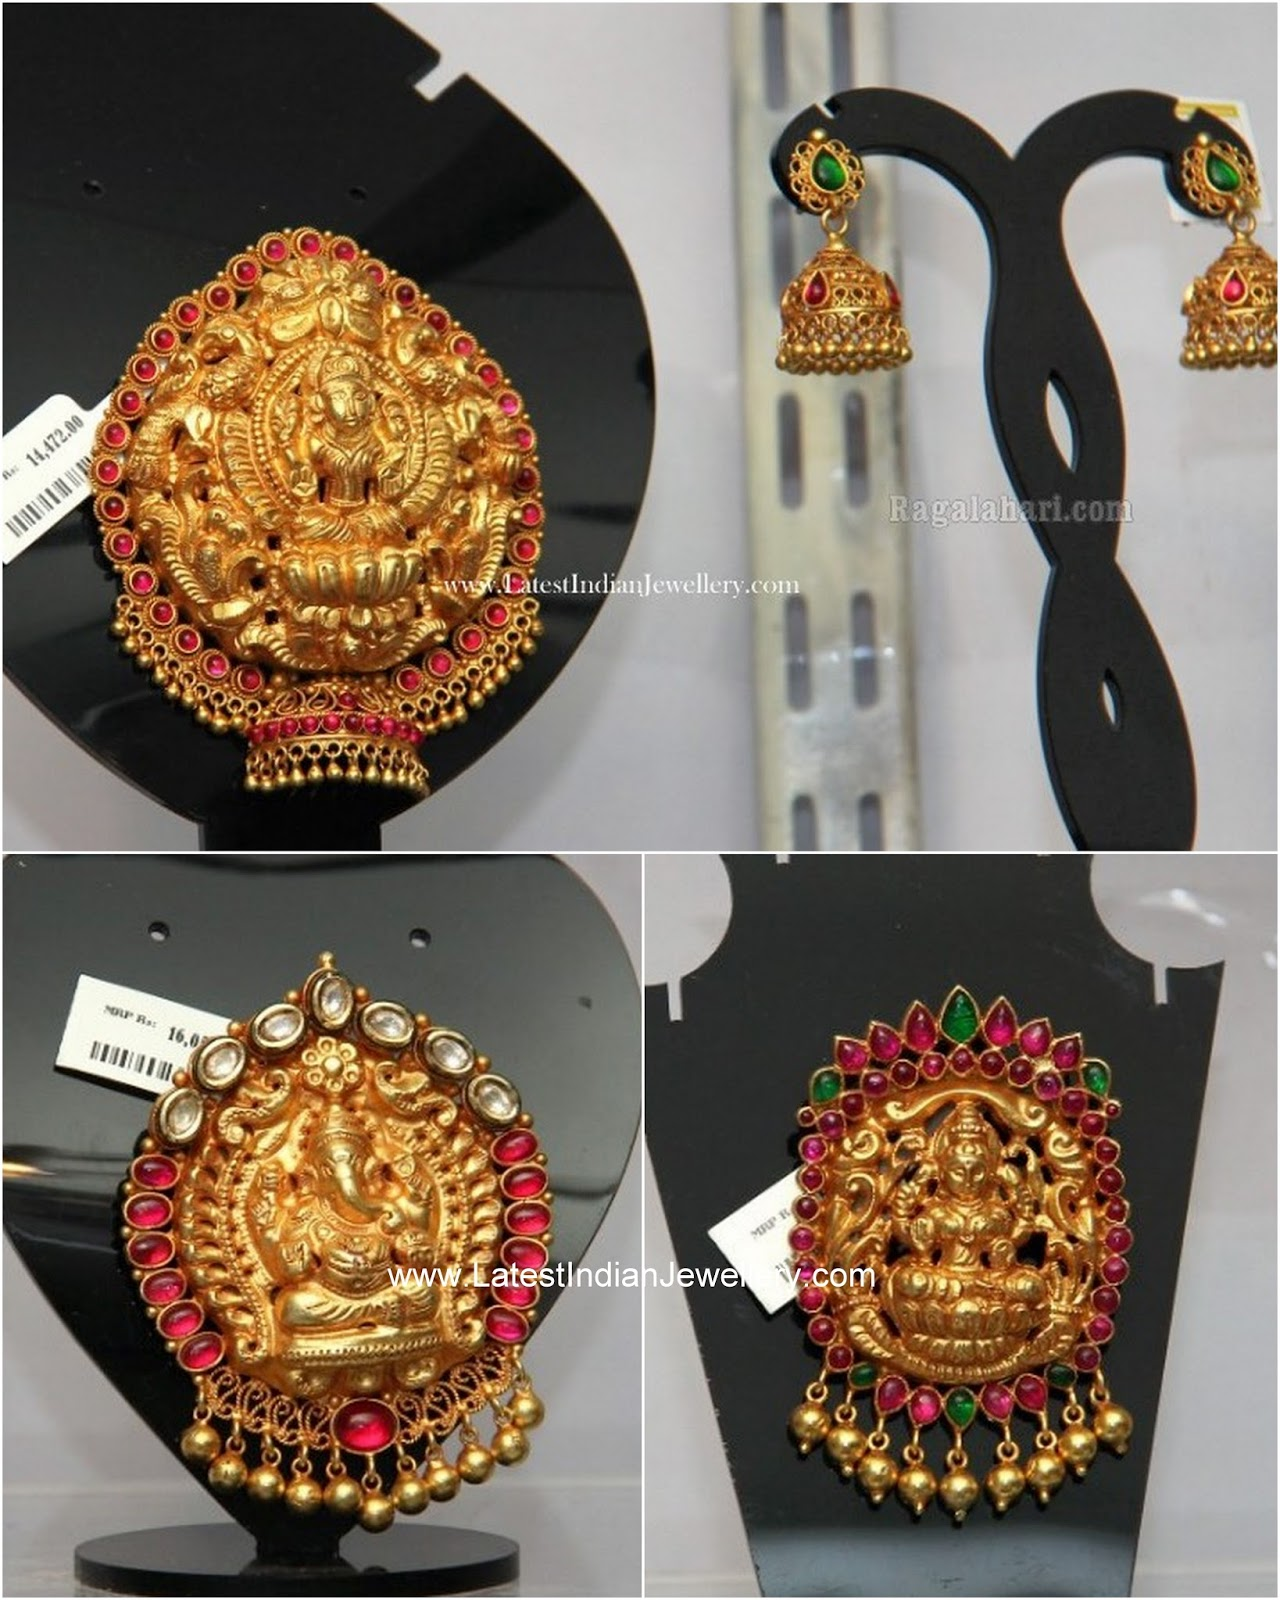 temple jewellery laxmi ganesh pendants